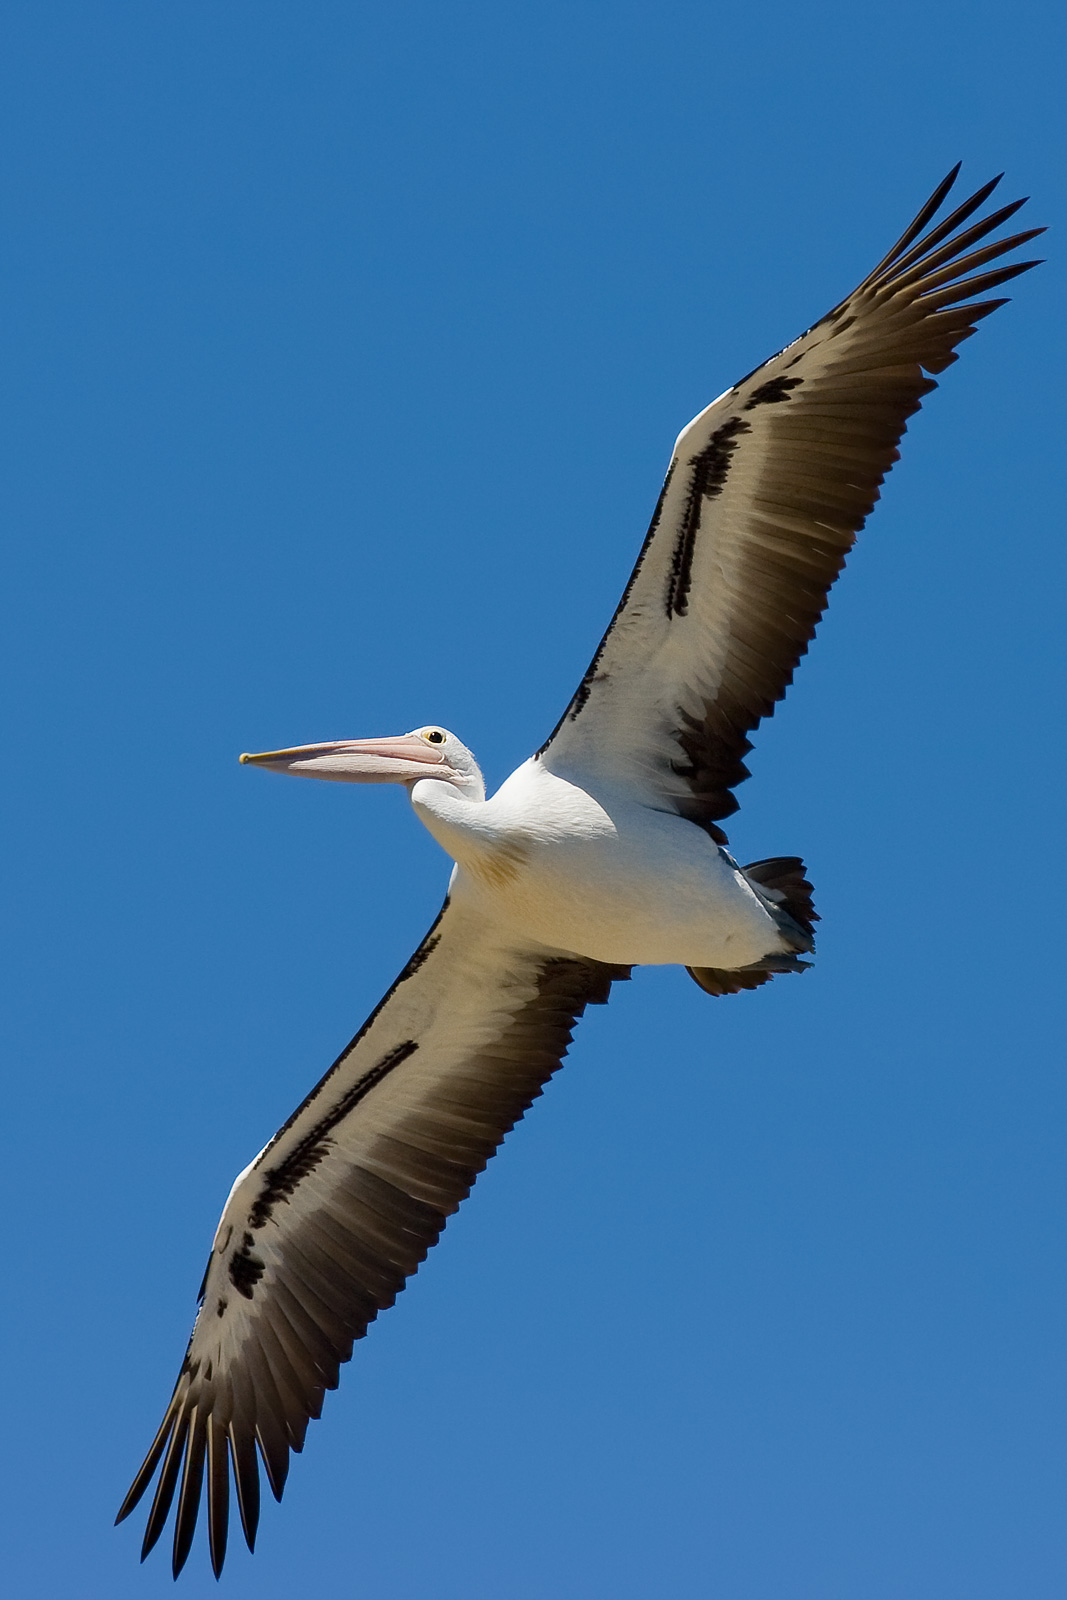 High Resolution Wallpaper | Pelican 1067x1600 px